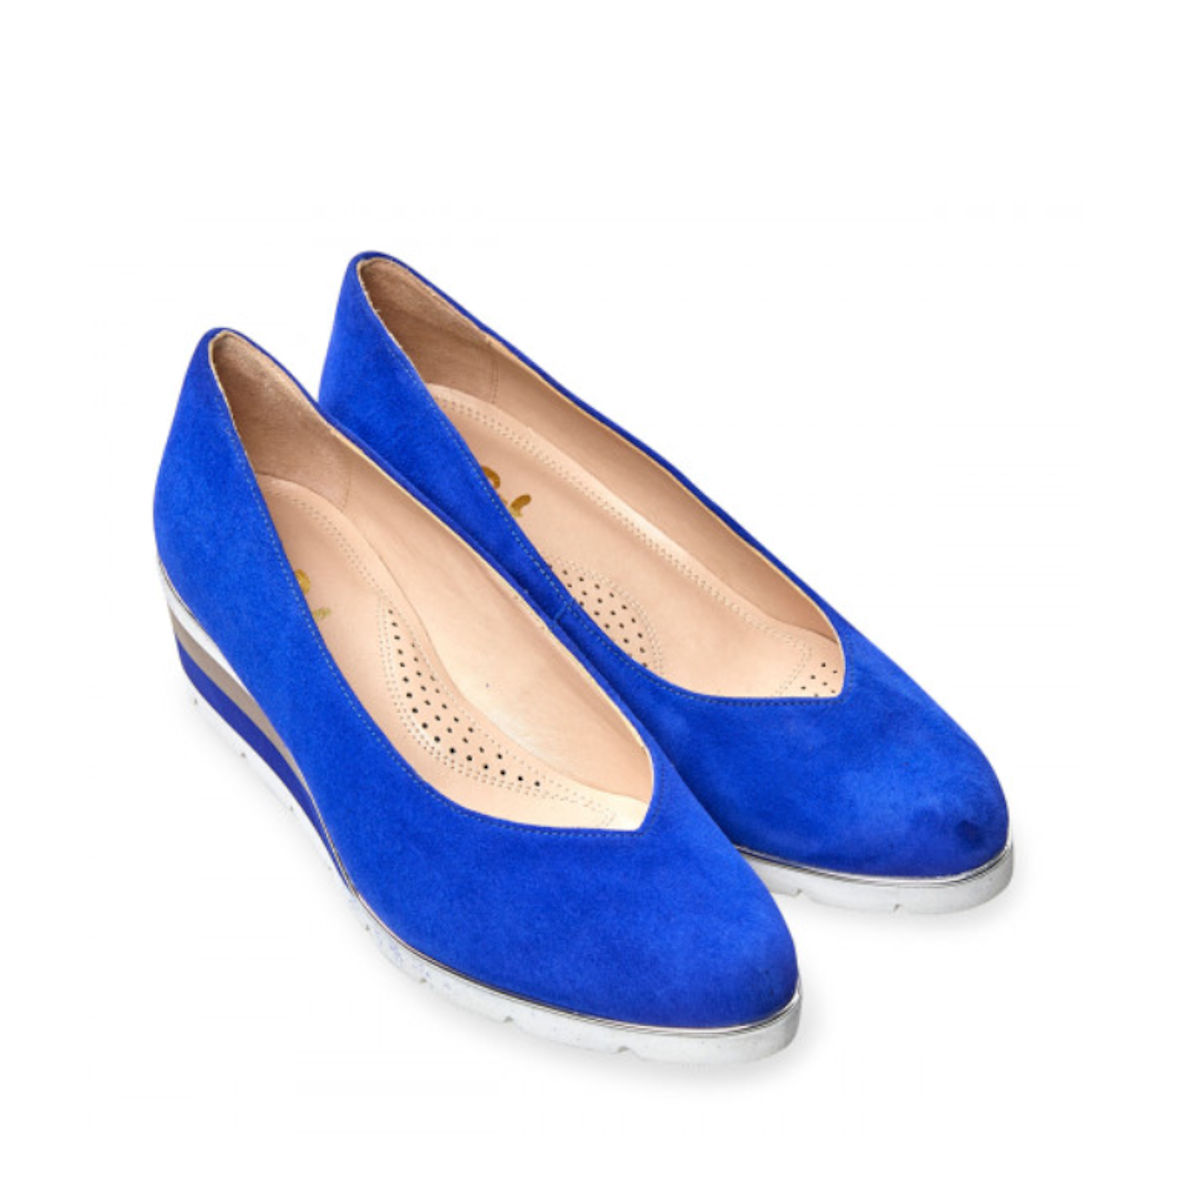 Van Dal Ariah Womens Ultramarine Suede Wedge Shoe